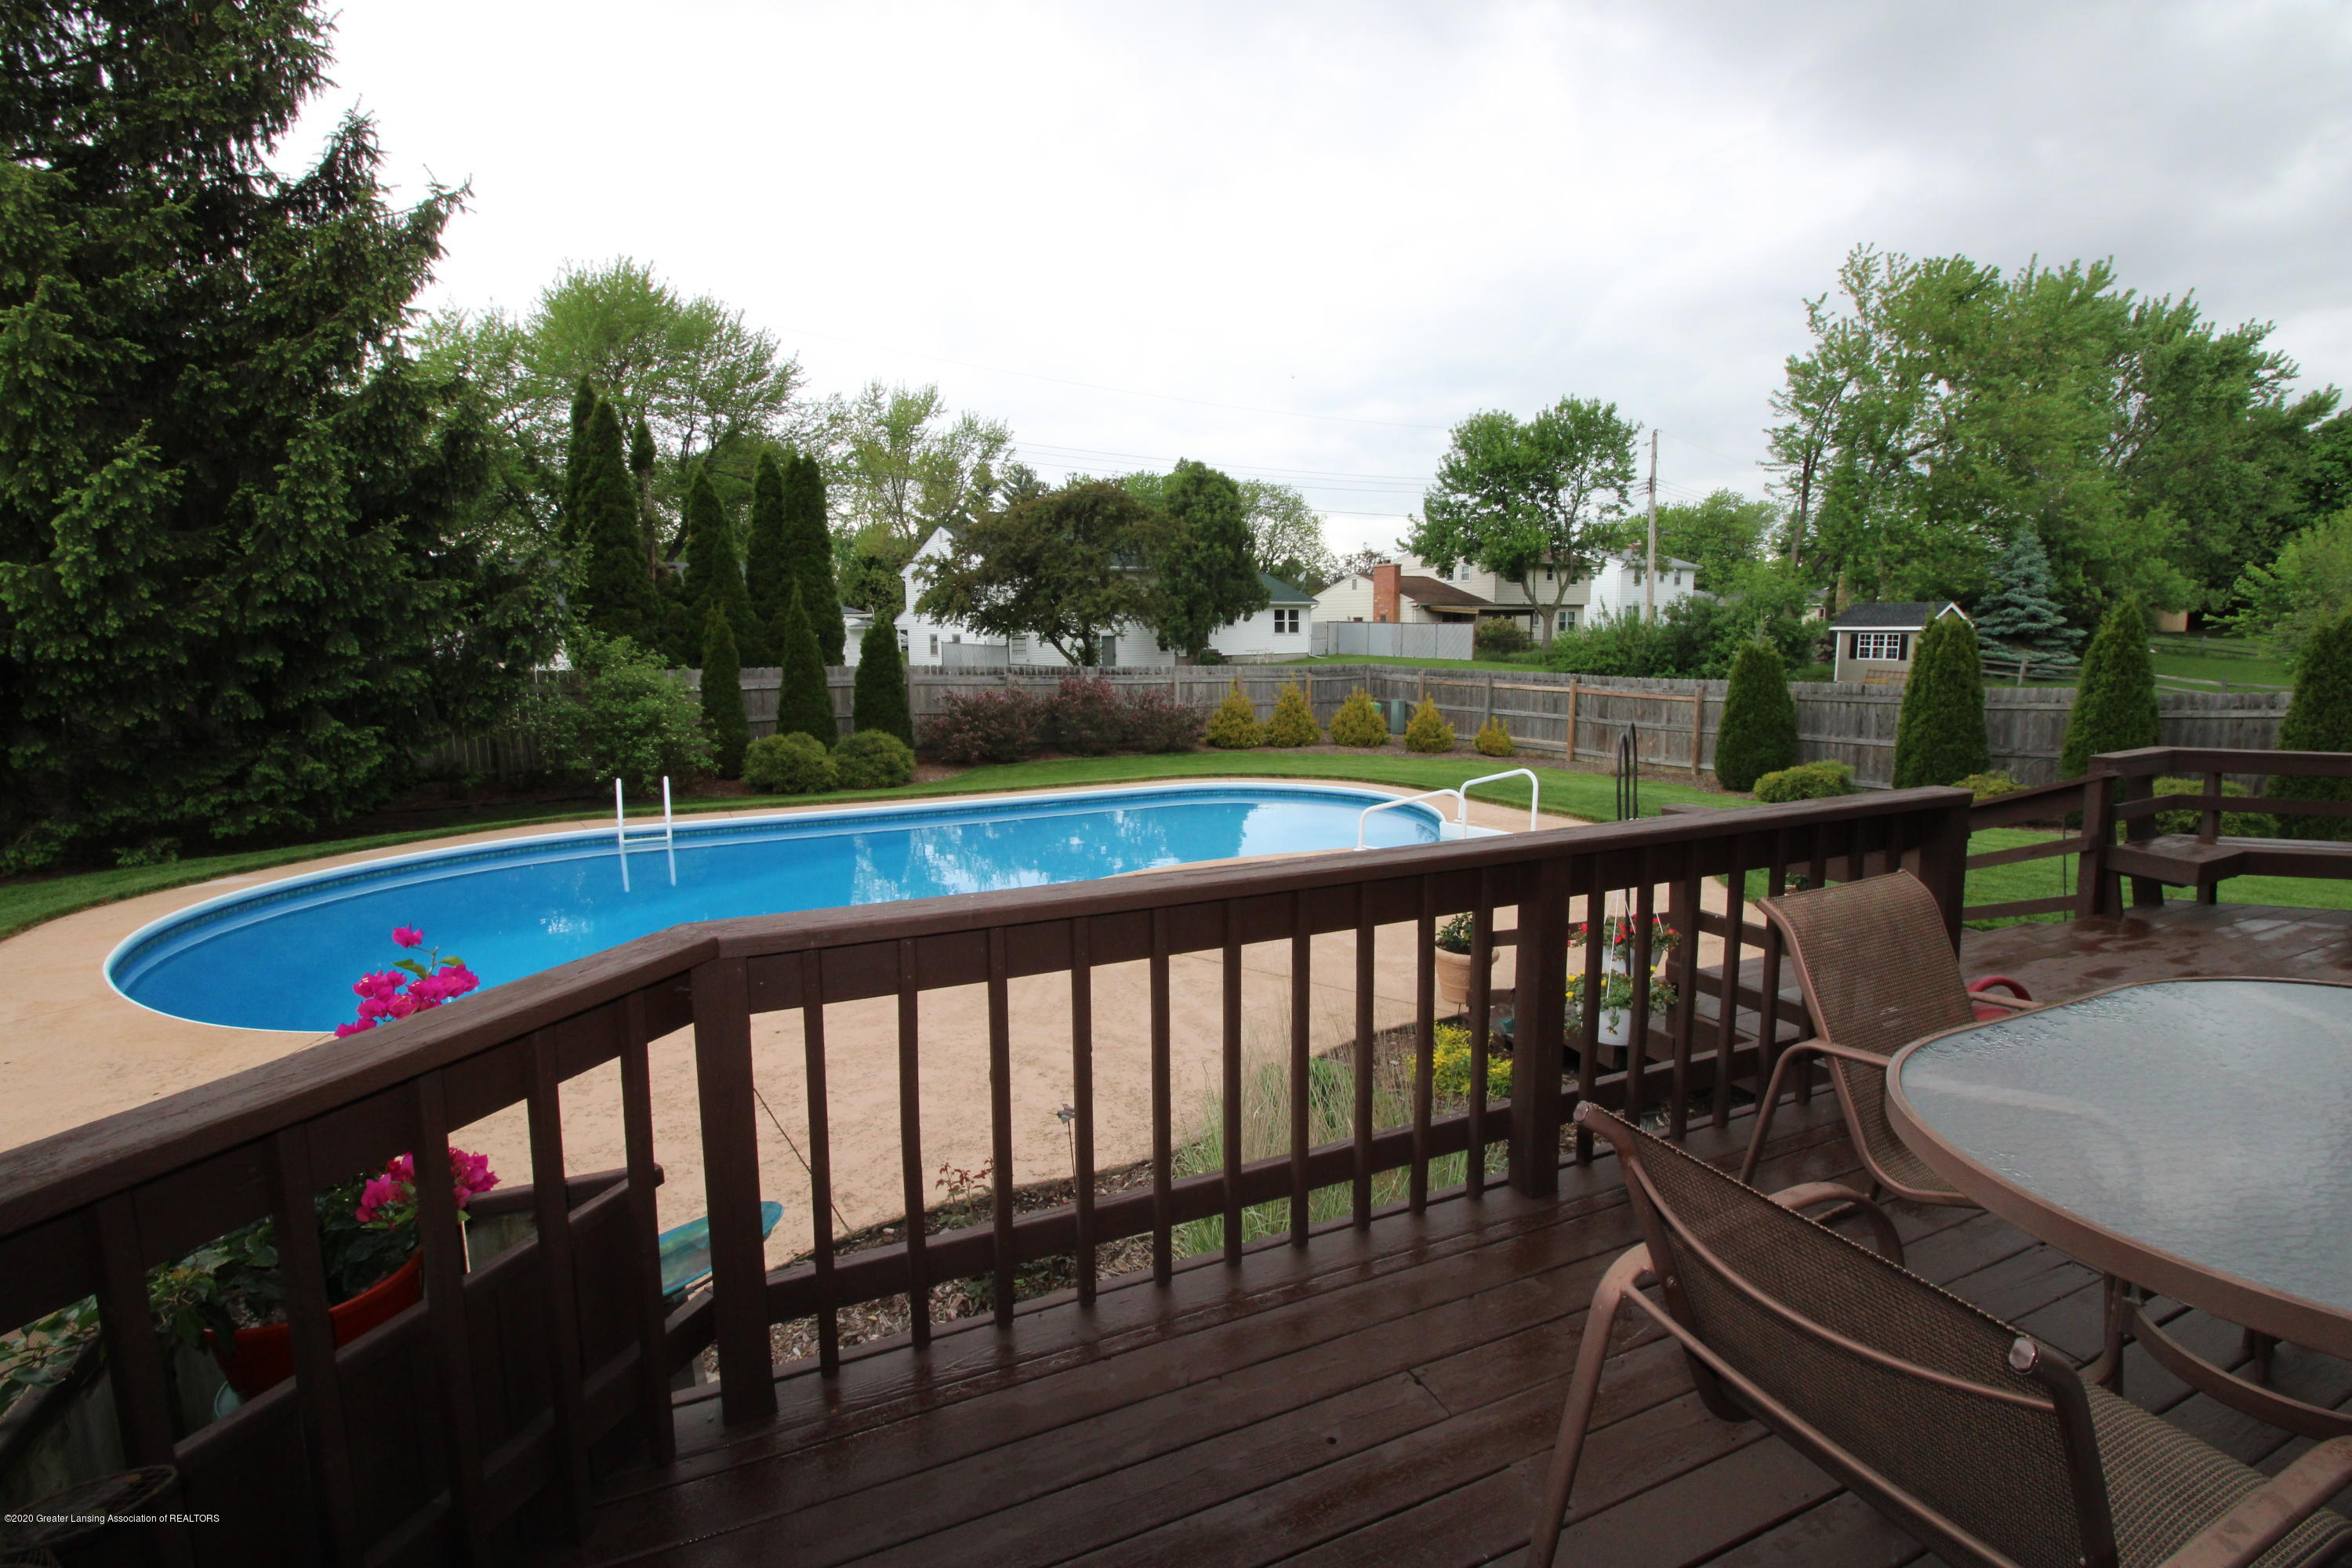 808 Powderhorn - 19. Pool from deck eating area - 24